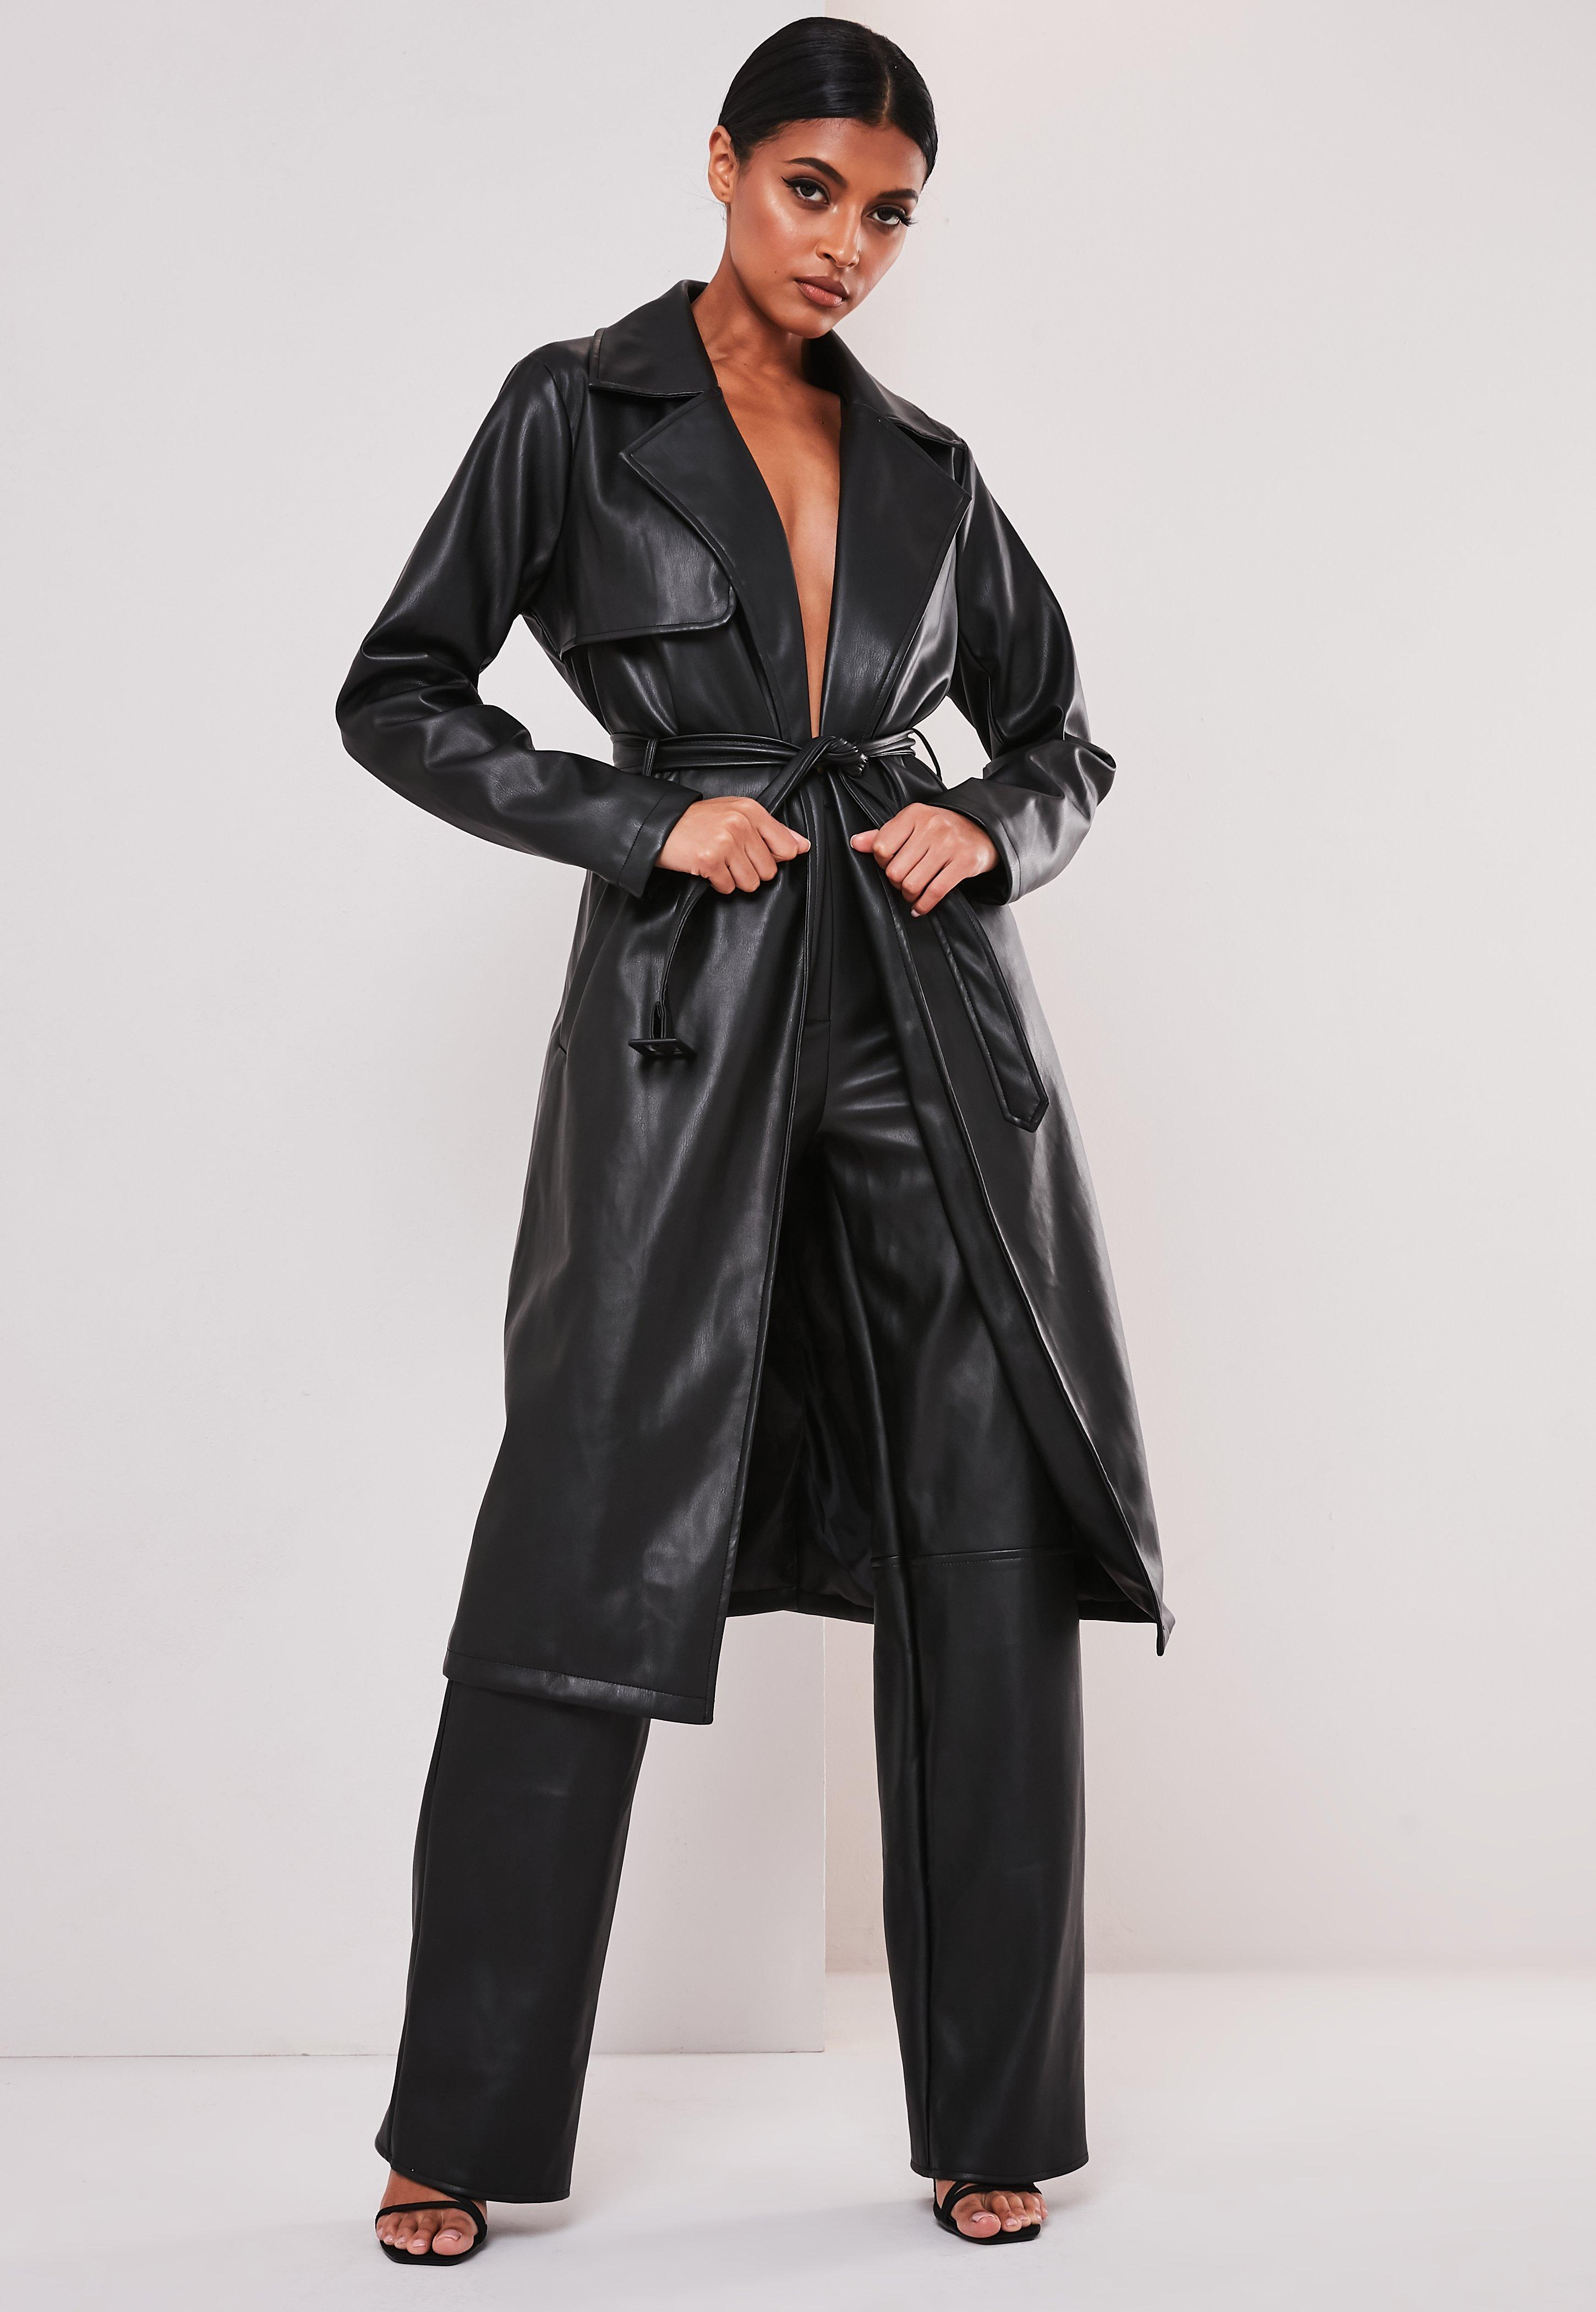 réputation fiable pas cher magasin britannique Sofia Richie x Missguided Manteau trench noir en simili cuir